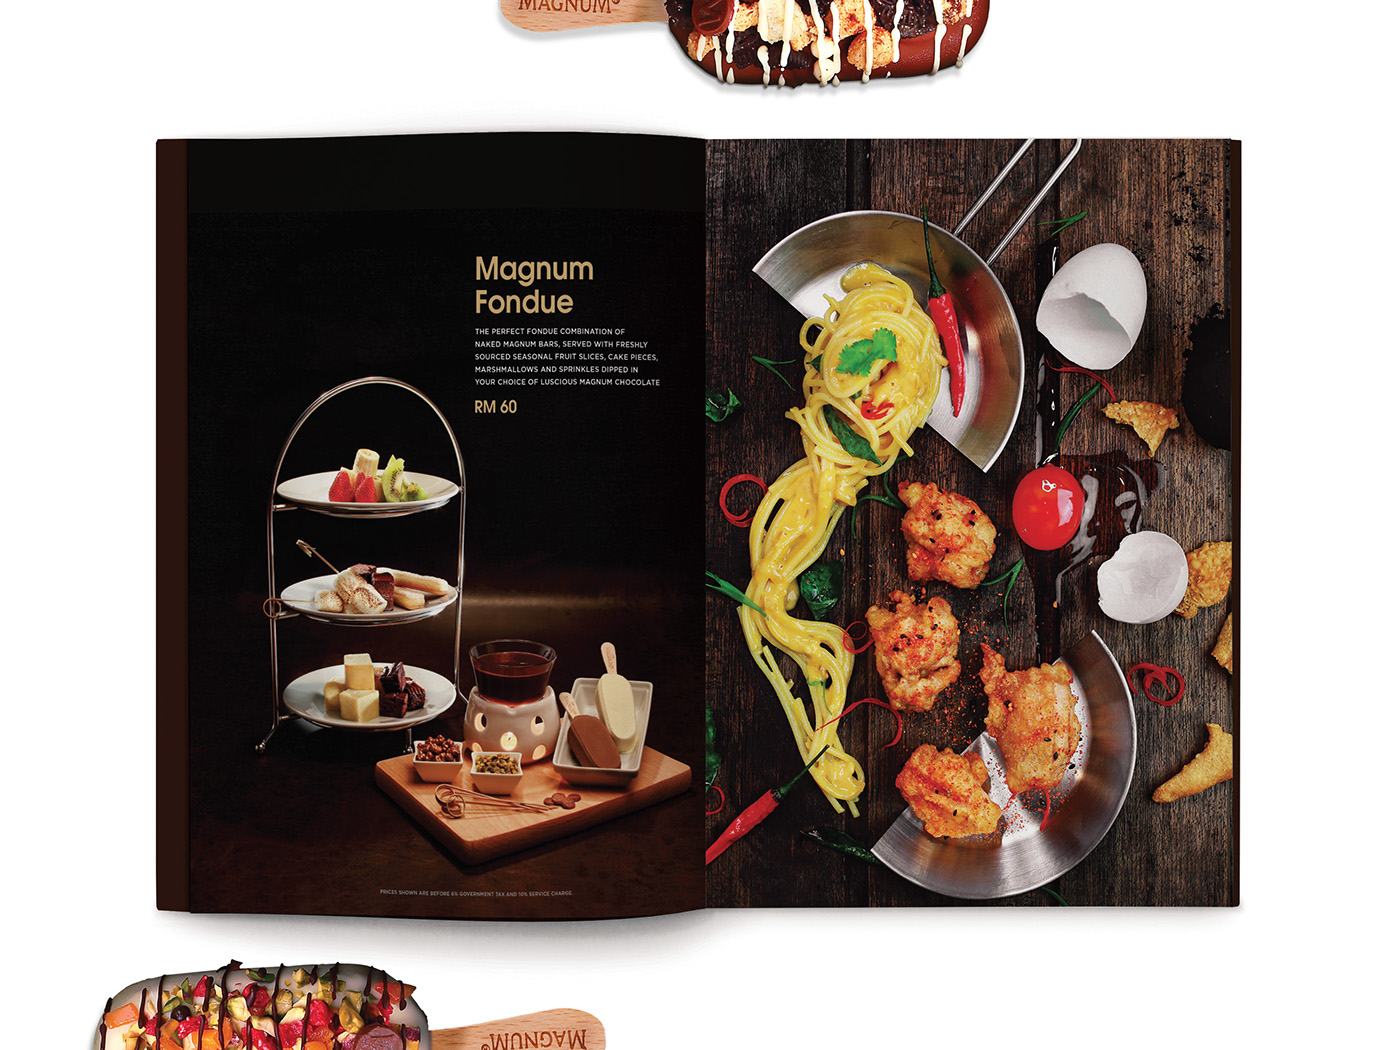 Magnum Pleasure Store menu design inner page layout design with beautiful food styling and photography of Magnum Fondue.